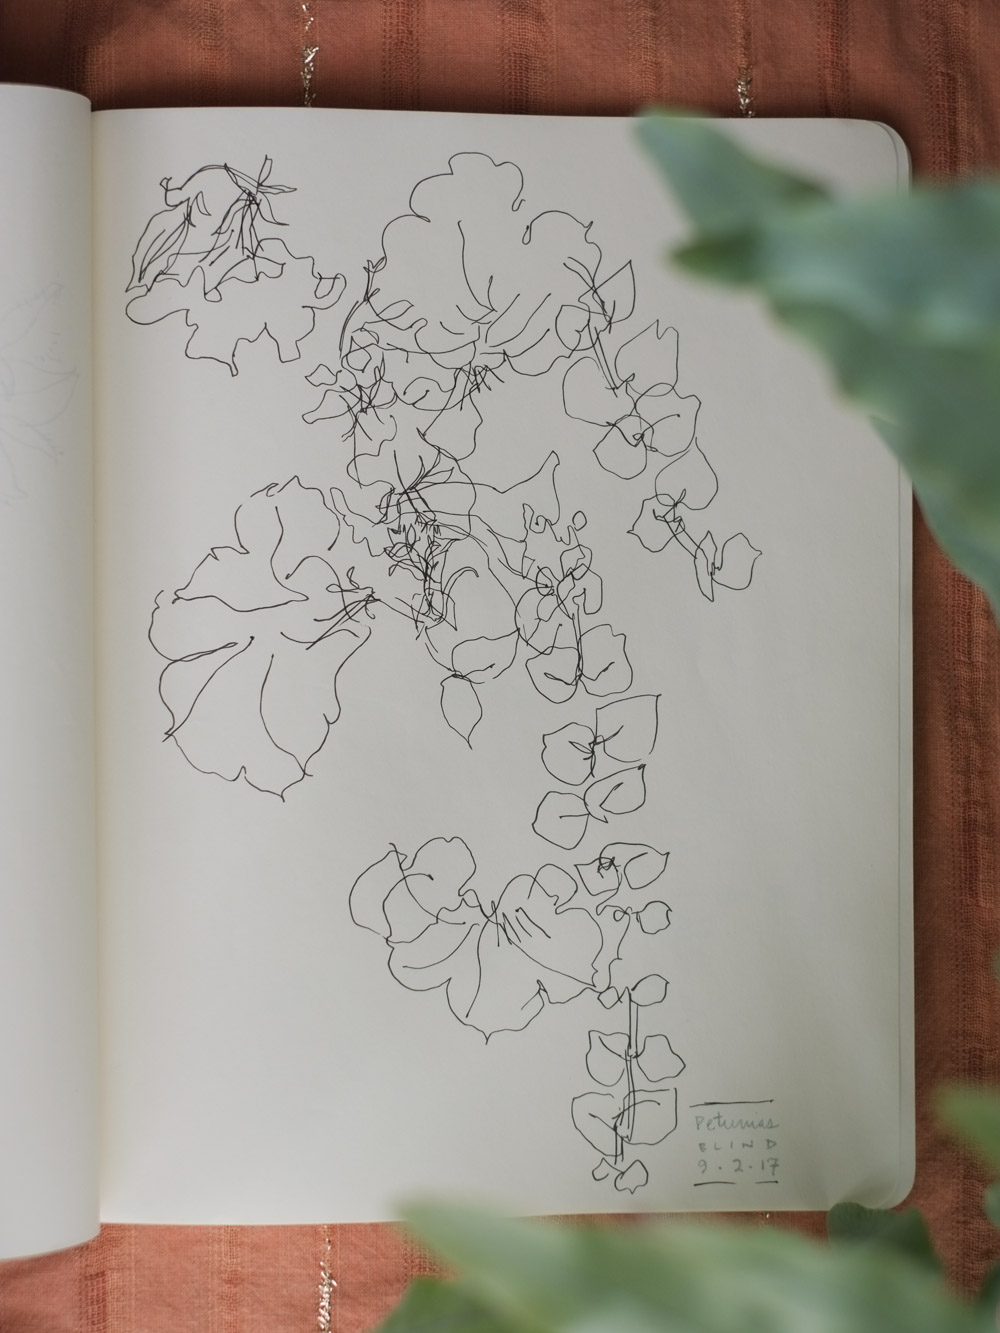 Erin_Ellis_daily_botanical_blind_drawings_sept_2017.jpg-2.jpg